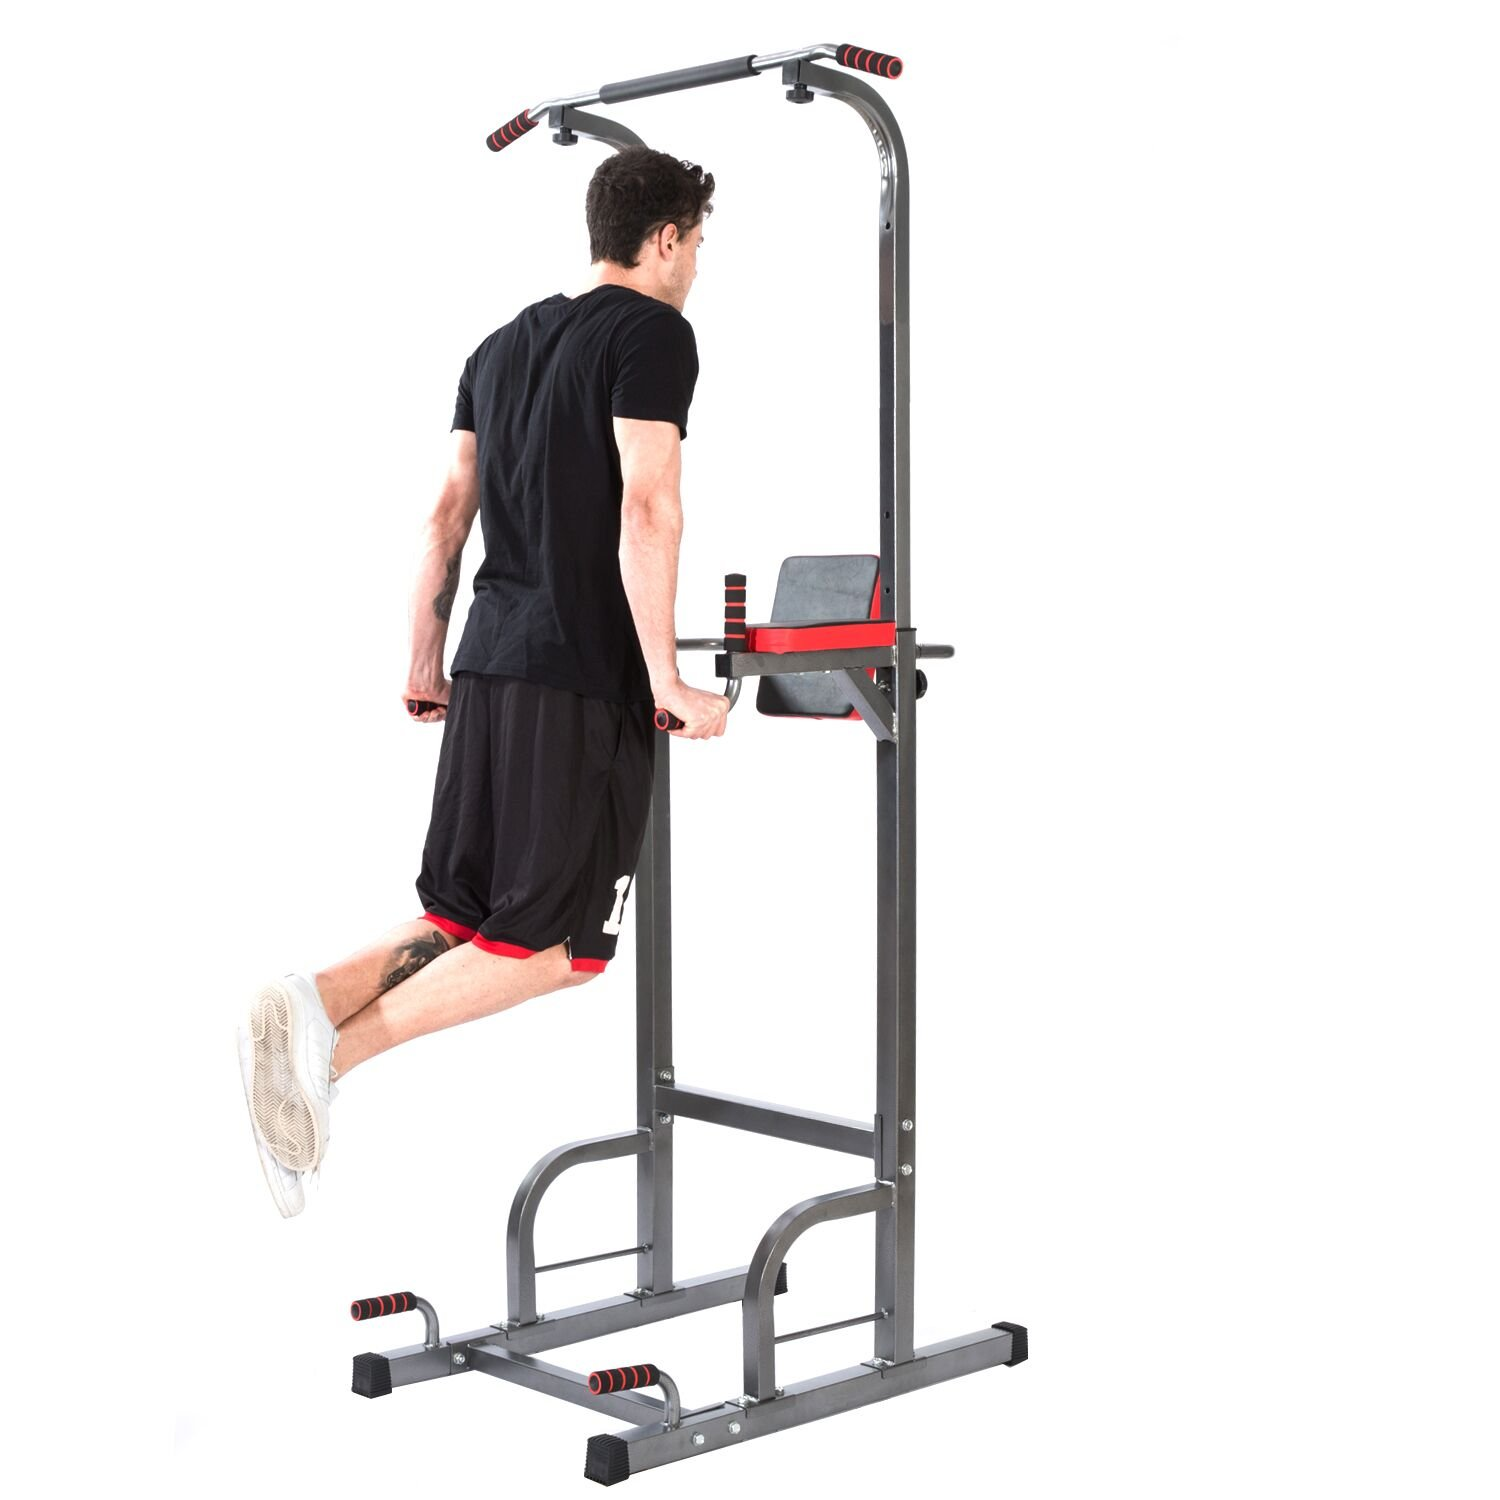 Lx Free Power Tower Adjustable height multi-functional pull-ups Station Home Fitness Workout Station by Lx Free